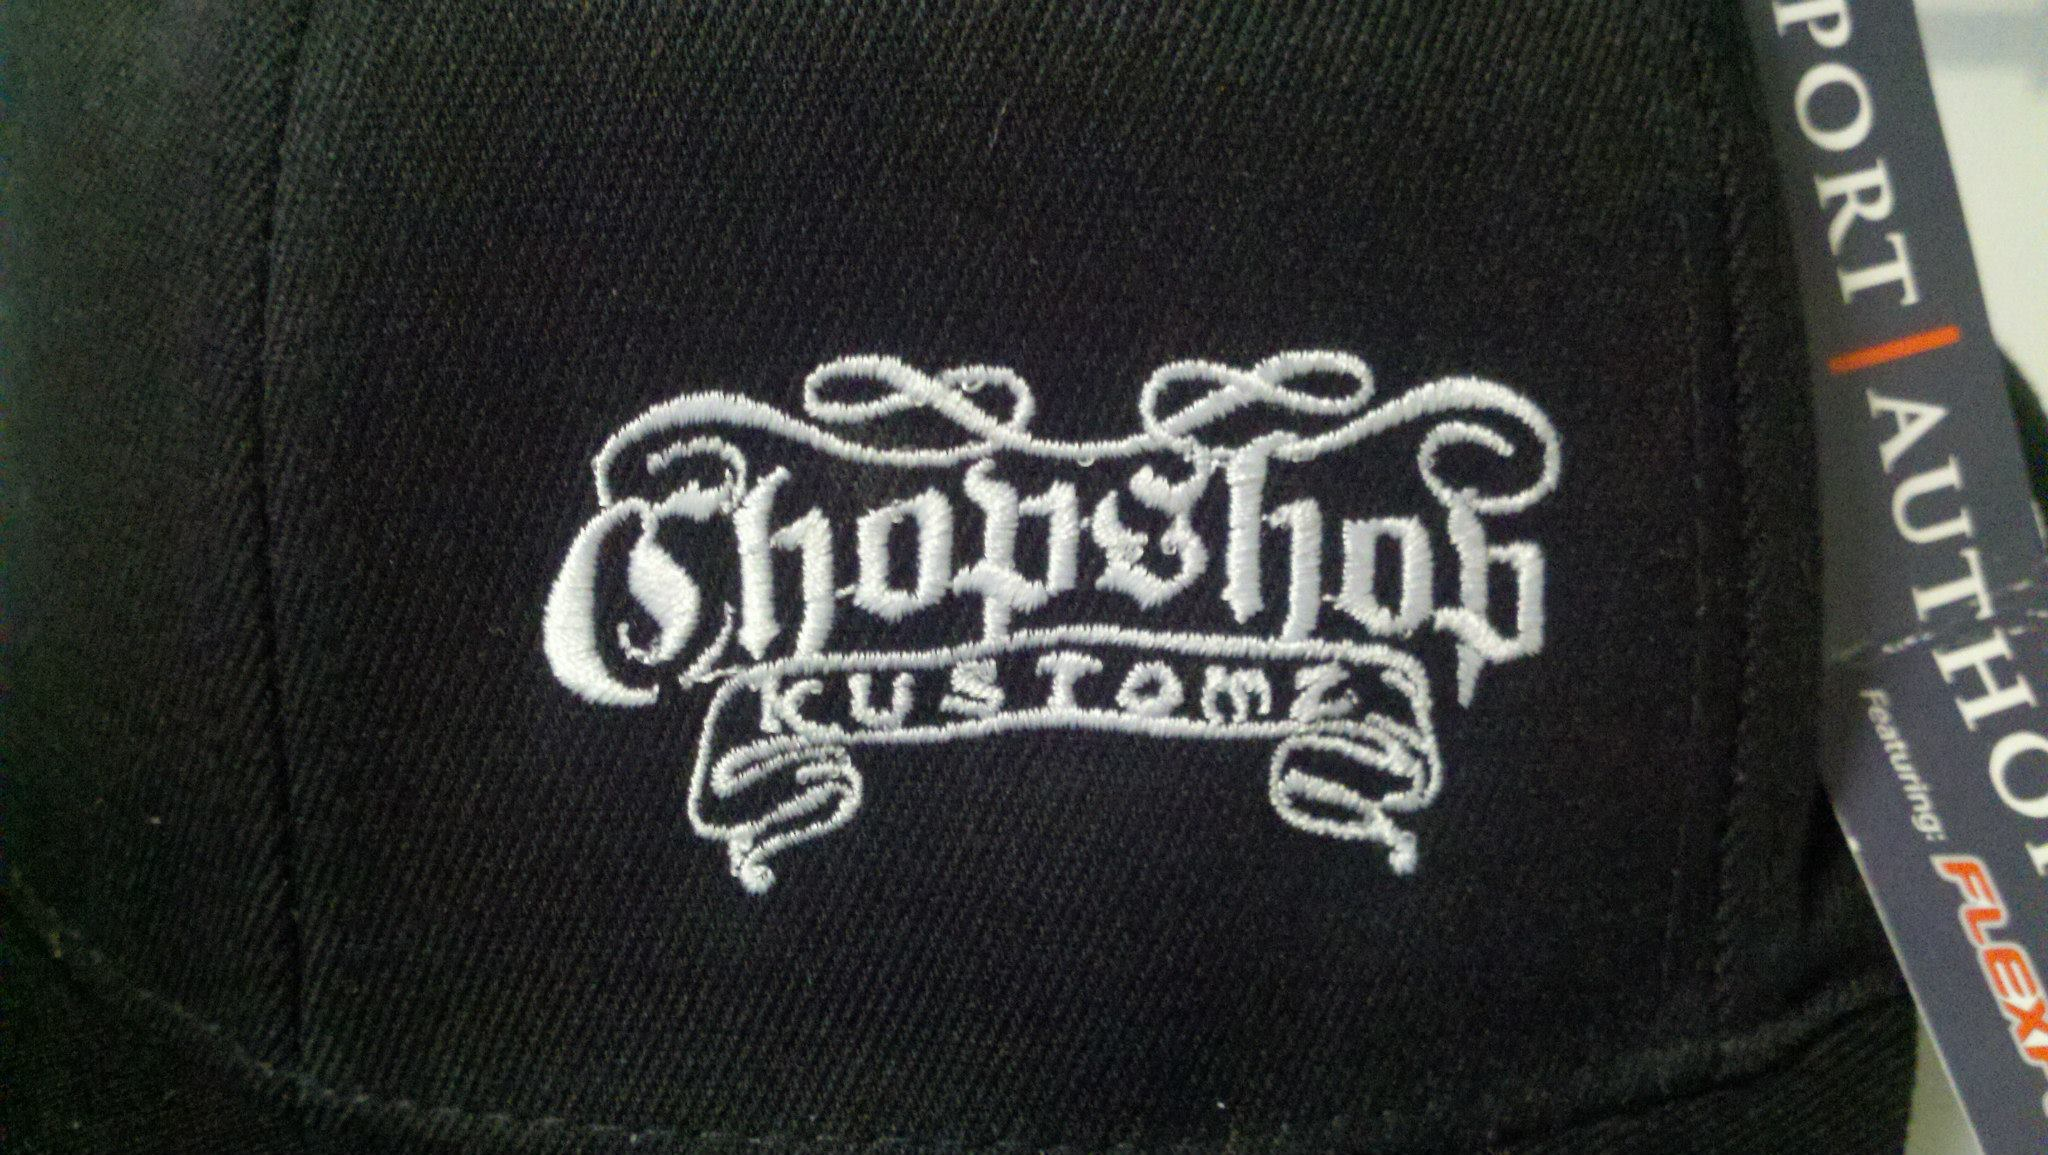 Chop Shop Customz